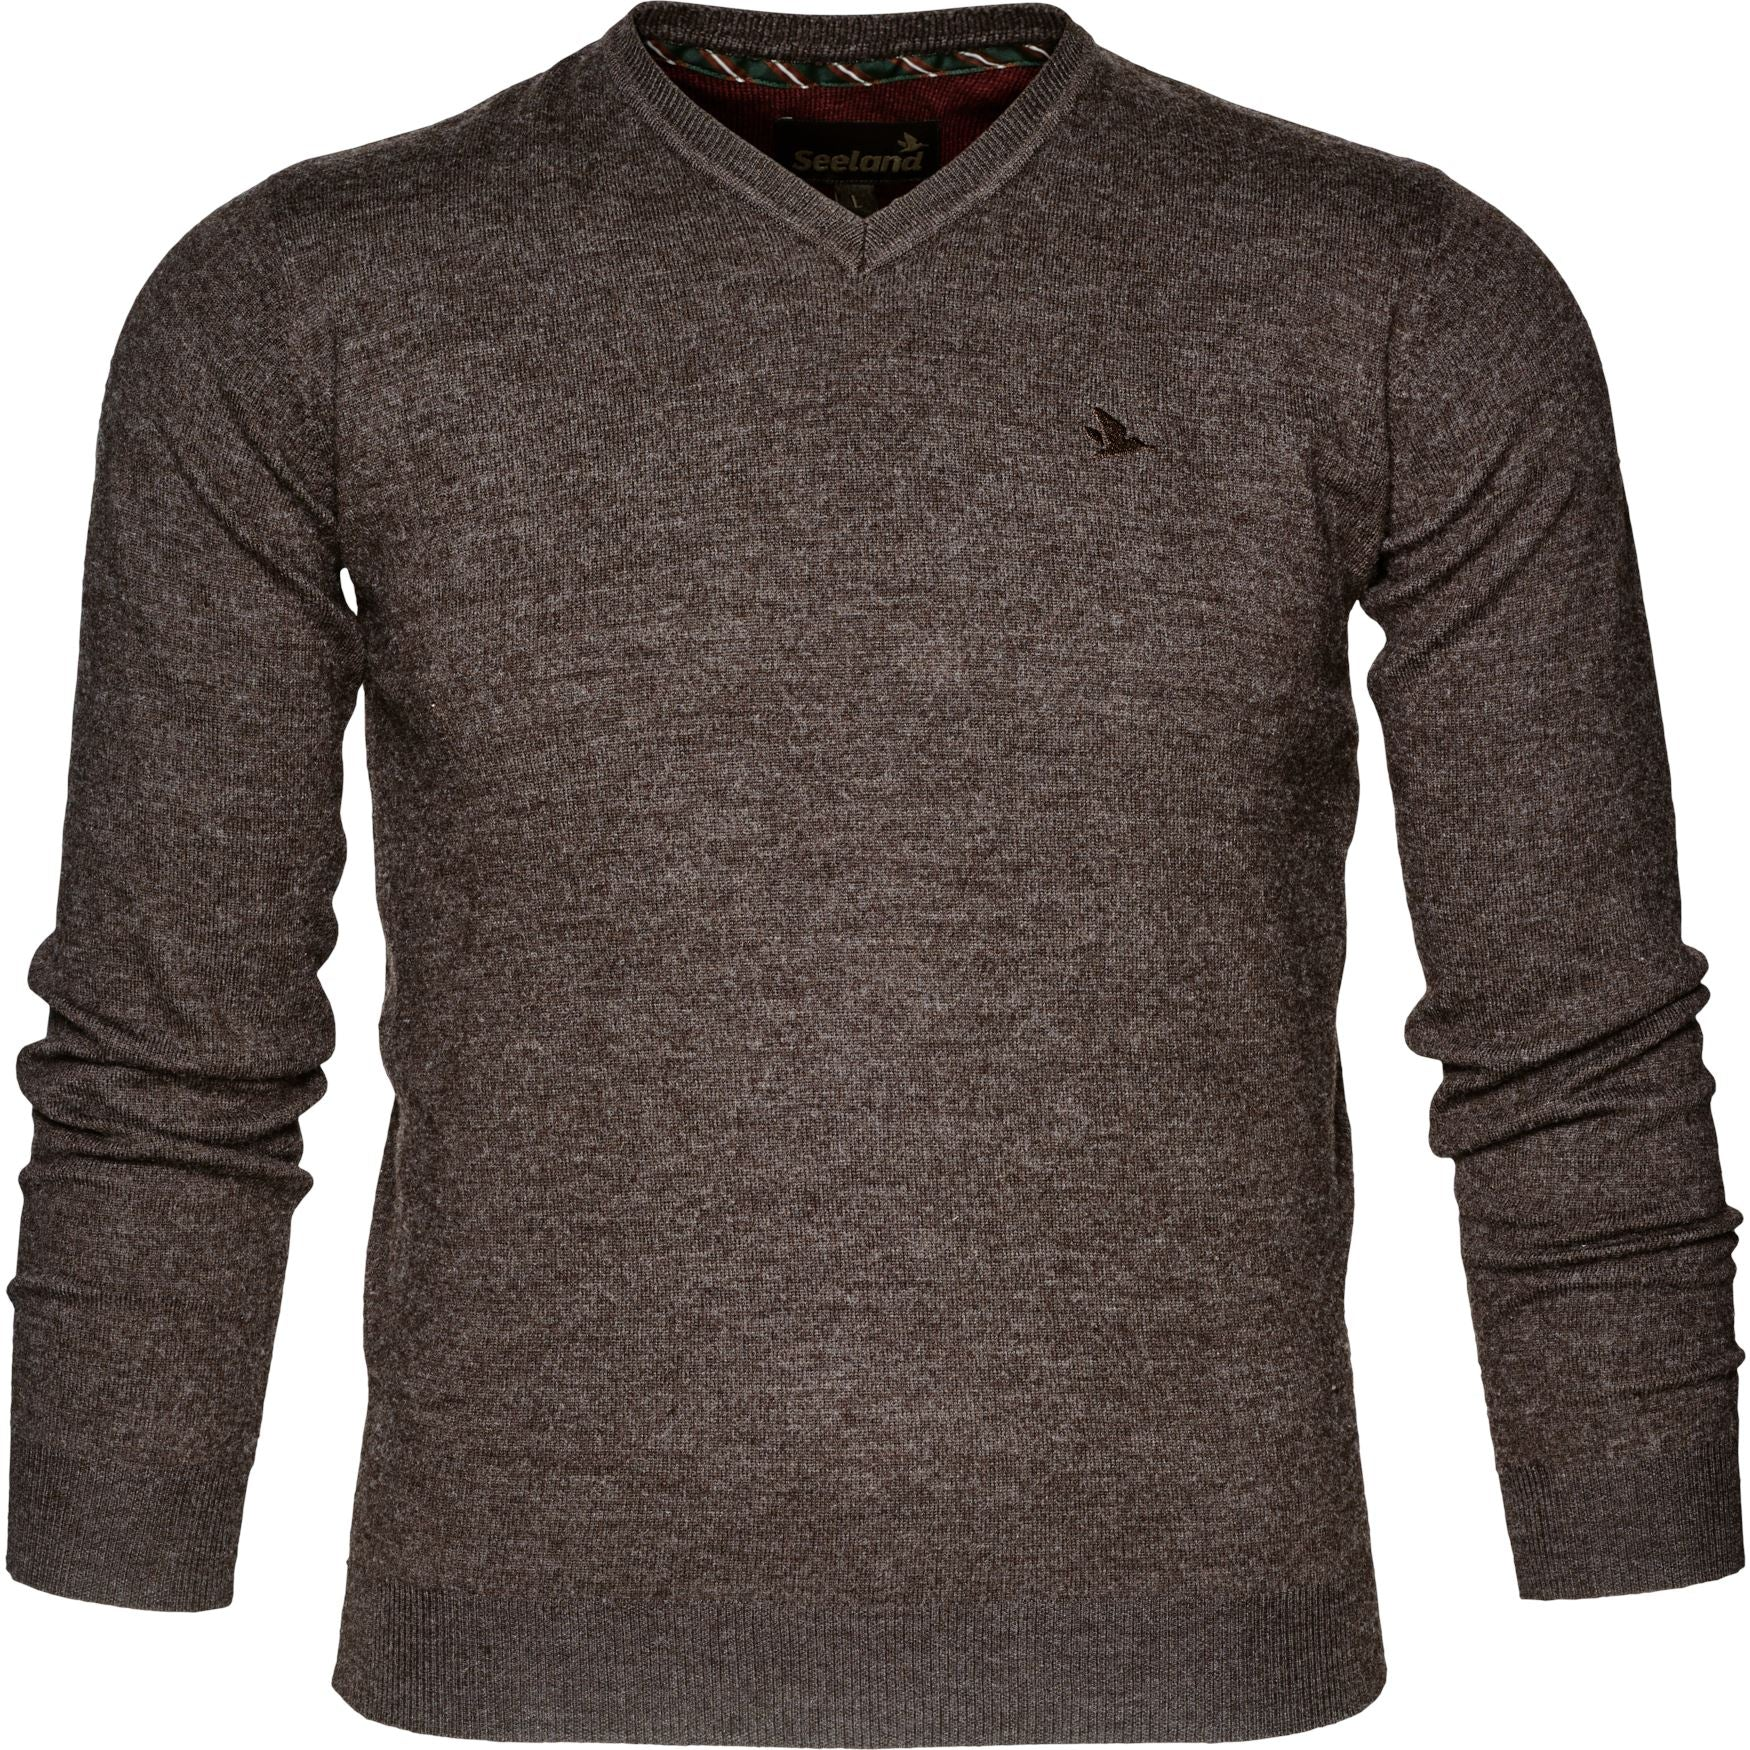 Seeland - Compton pullover thumbnail